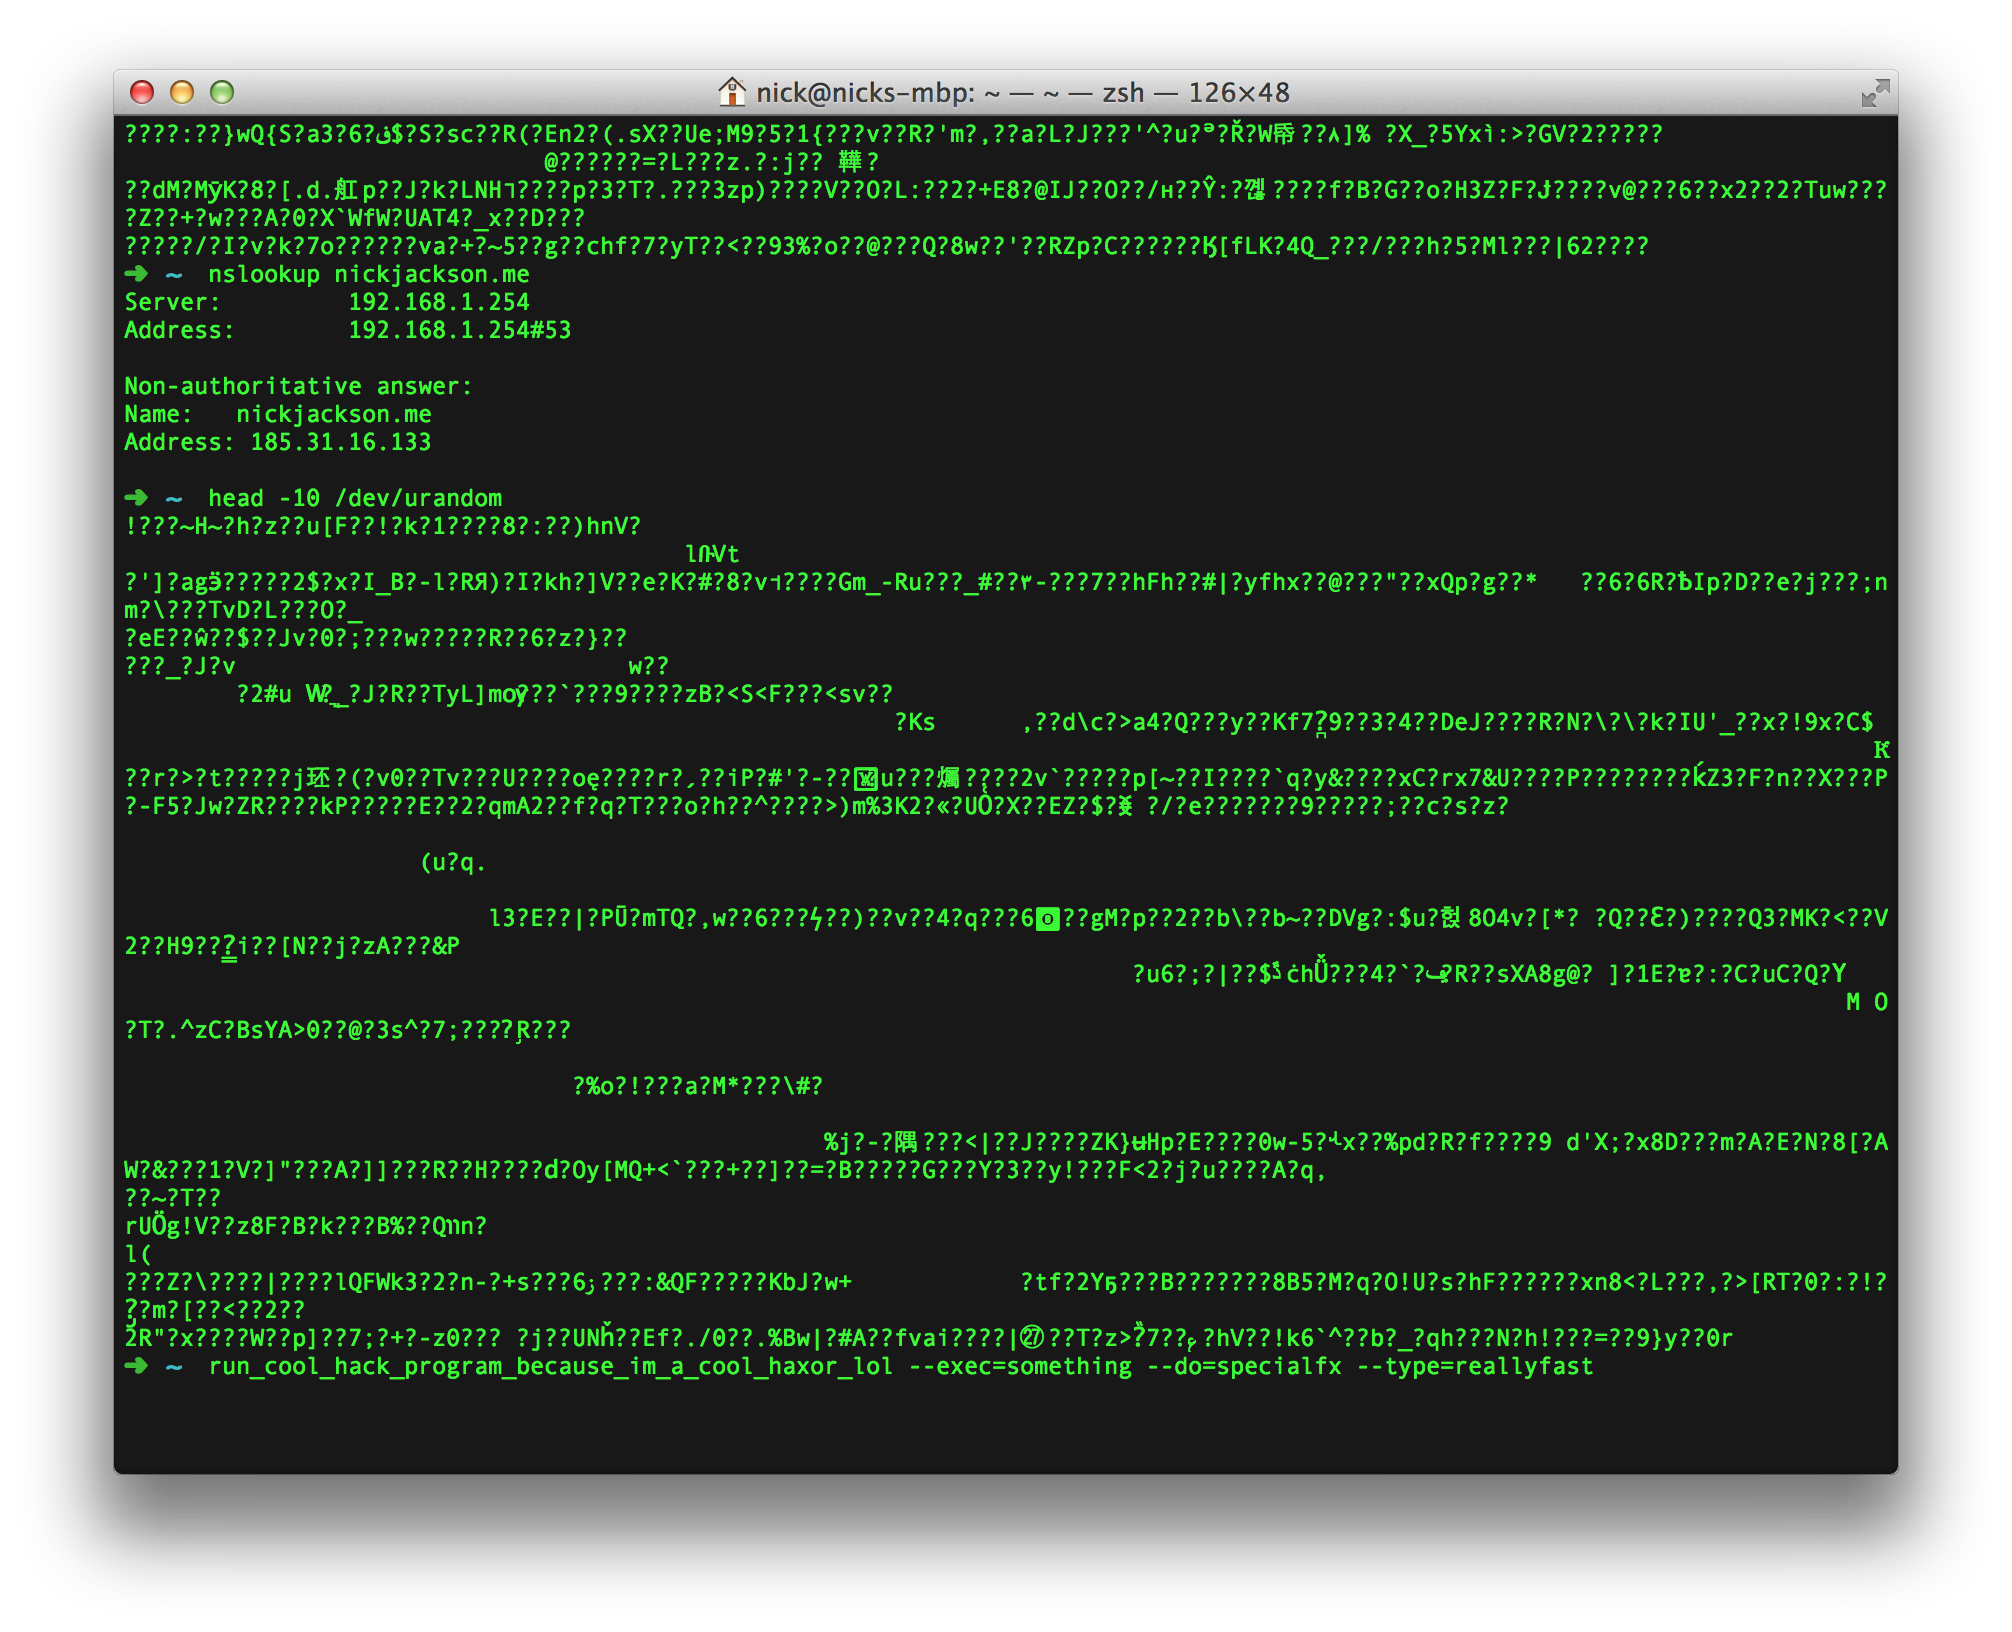 A screenshot of my terminal, showing an IP address amid gibberish.